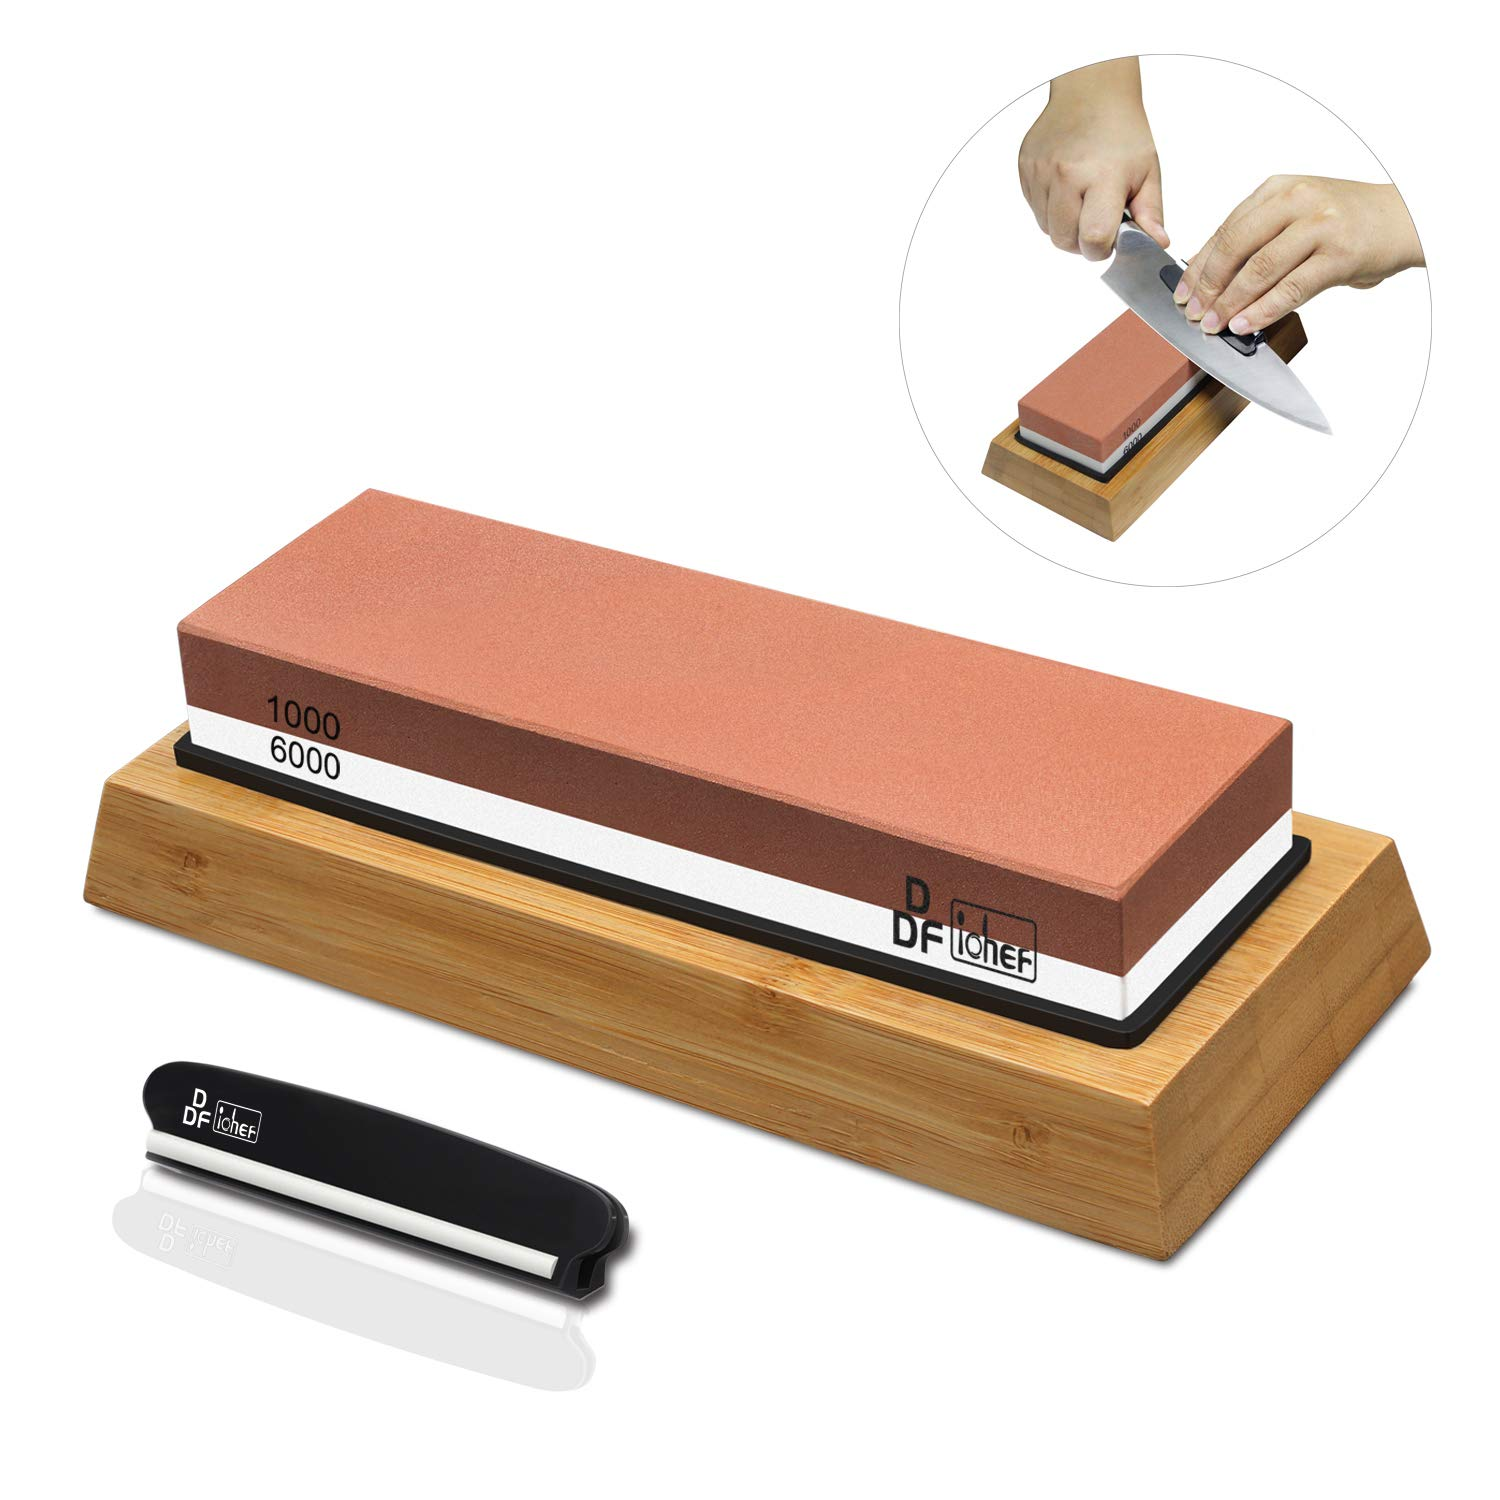 Knife Sharpening Stone, Whetstone Sharpener 1000/6000 2 Sided Grit Non-Slip Bamboo and Silicon Base Angle Guide for Chef Knife,Kitchen Knife,Hunting Knife by DDF iohEF